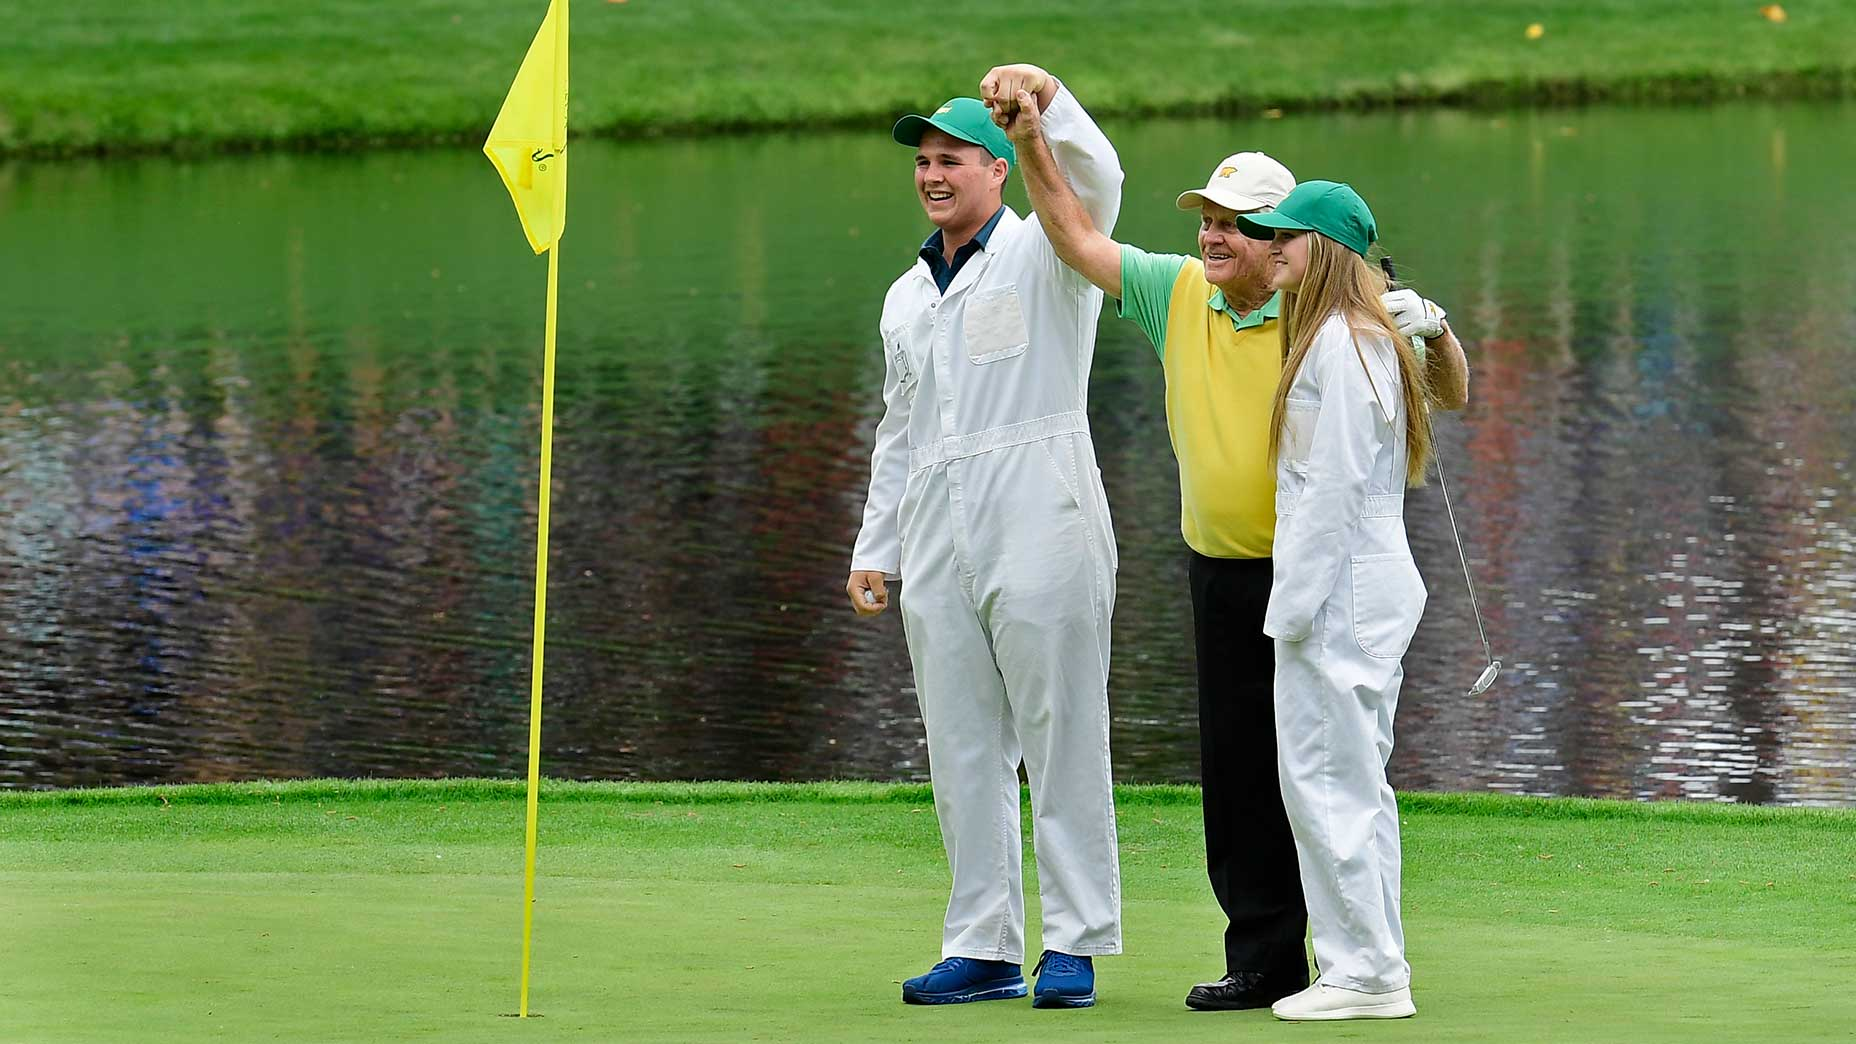 Jack Nicklaus at the 2018 Masters.